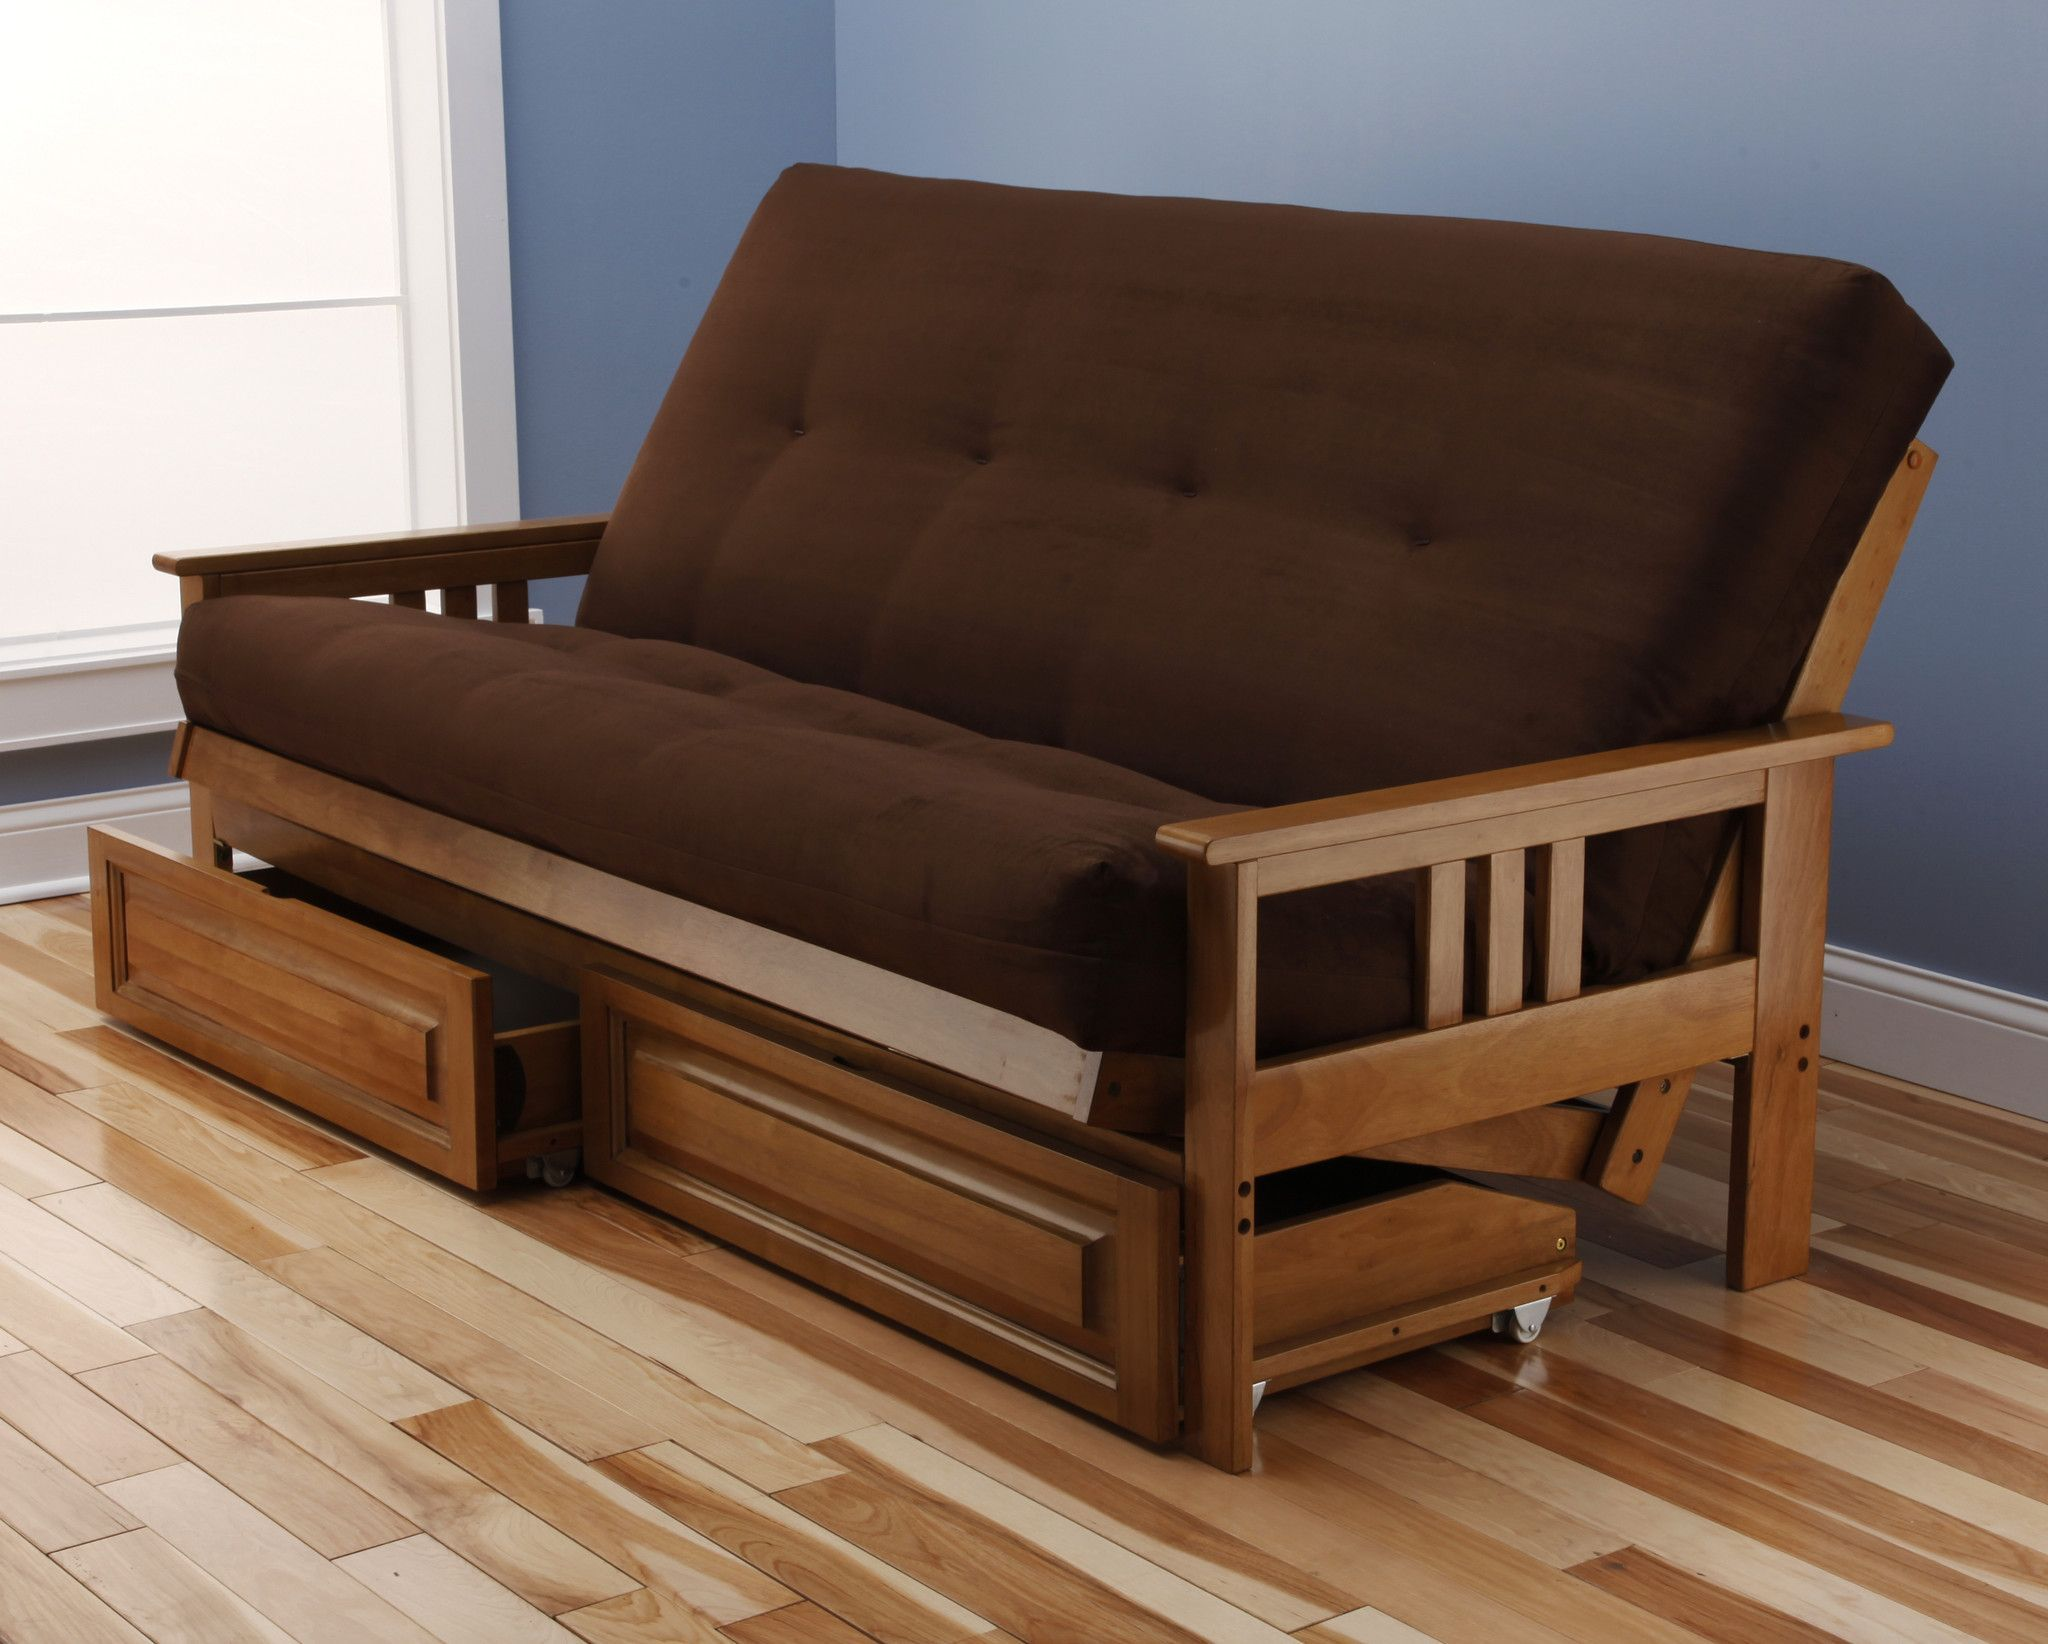 andover futon frame and drawer set in light honey oak wood suede innerspring mattress - Wood Frame Futon With Mattress